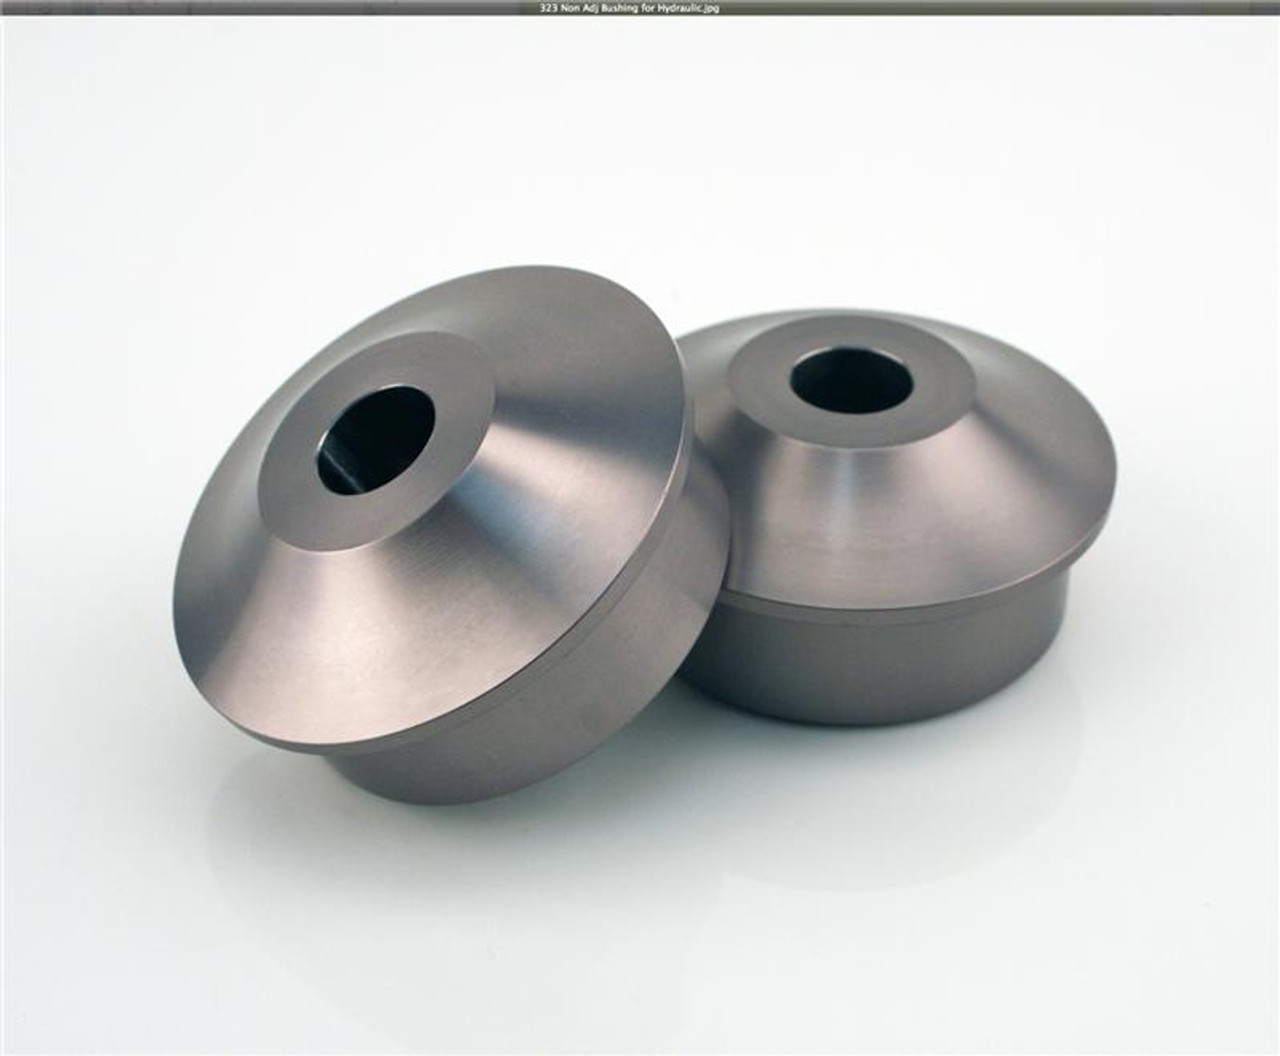 NON-ADJUSTABLE THRUST ARM BUSHING KIT – Front Axle. Ideal for castor adjustable thrust Arms from other brands. Set of 4 The RSS Non-Adjustable Thrust Arm Bushing Kit will improve handling and response of suspension system. Eliminates unwanted caster changes in both front or rear suspension under acceleration and deceleration. AVAILABLE FOR ALL PORSCHE® 987, 997 (non GT#) 981, GT4, 991, 991 GT3/RS .